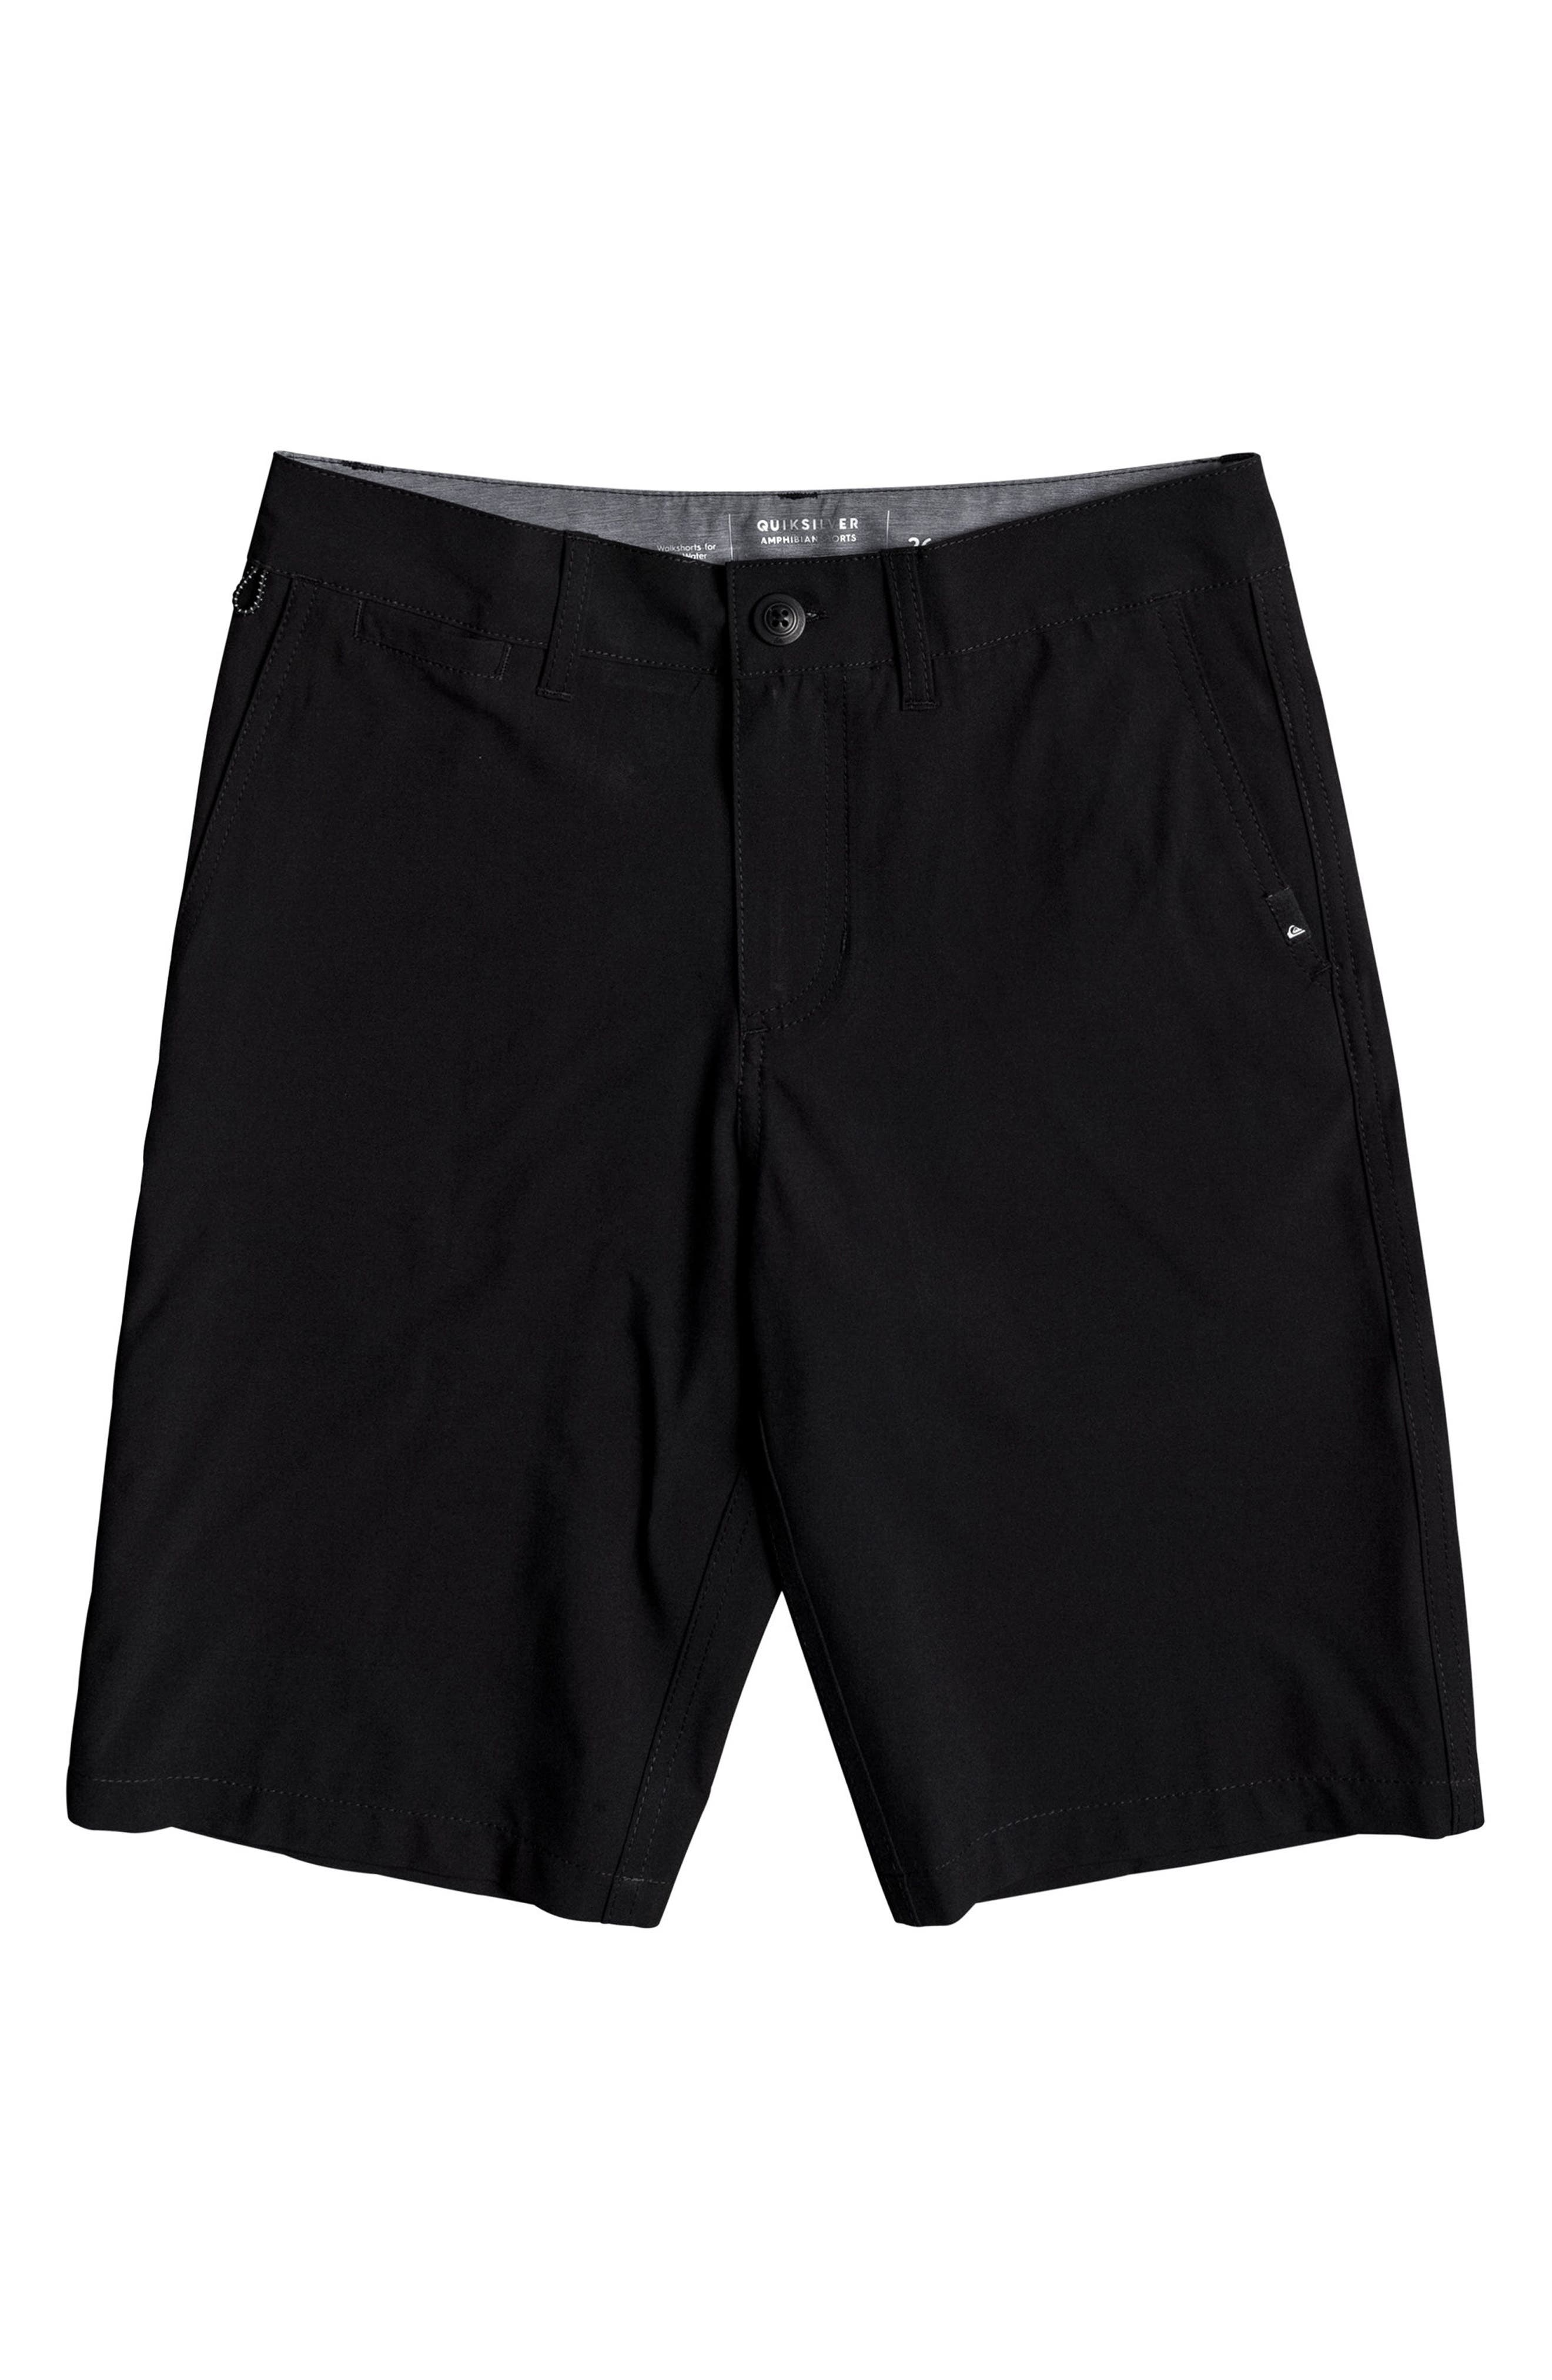 Quiksilver Union Amphibian Board Shorts (Big Boys)